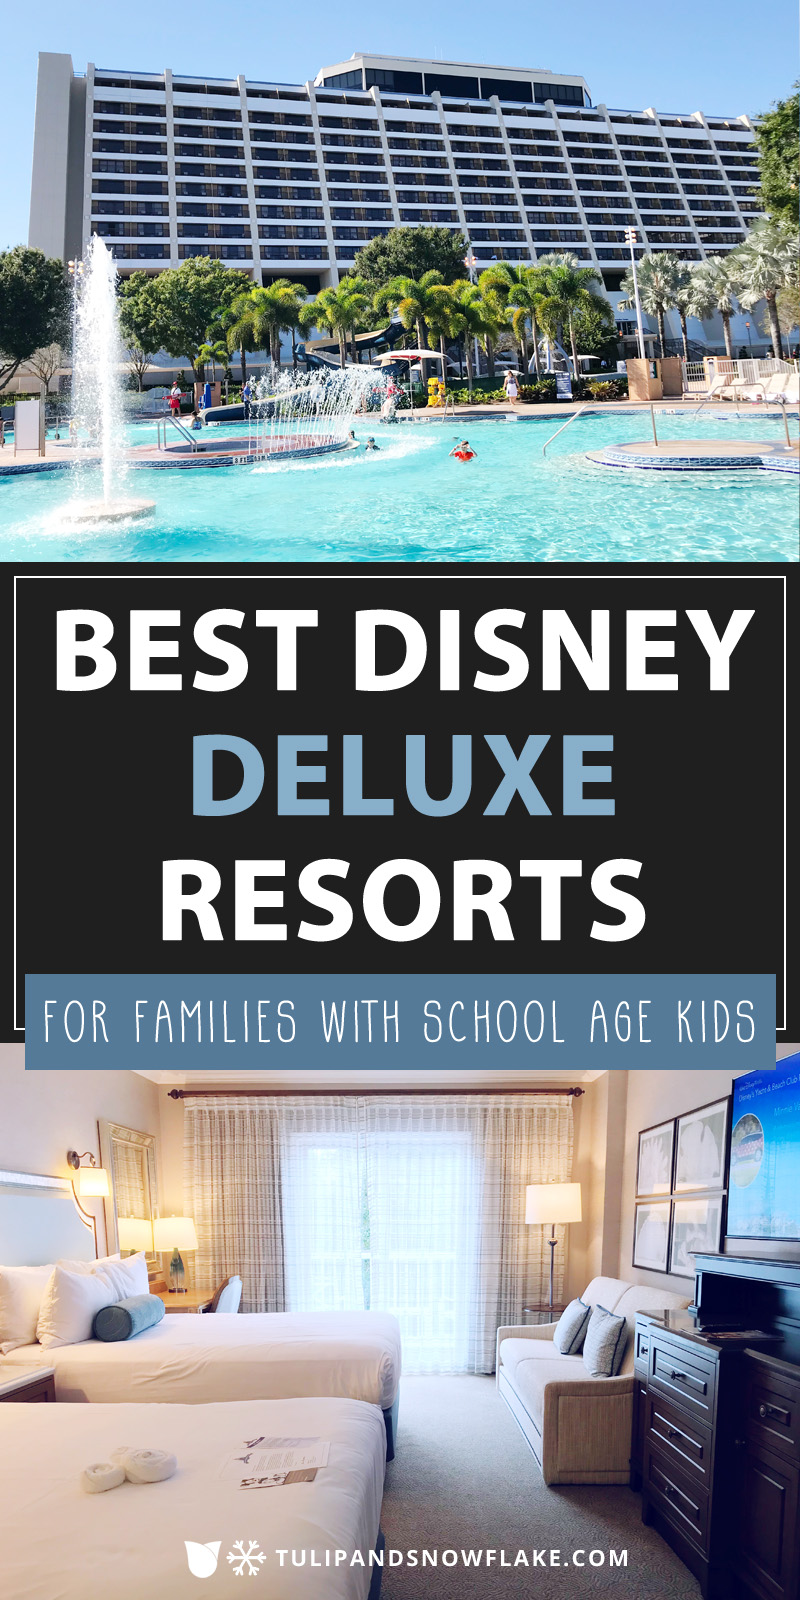 Best Disney deluxe resorts for families with school age kids